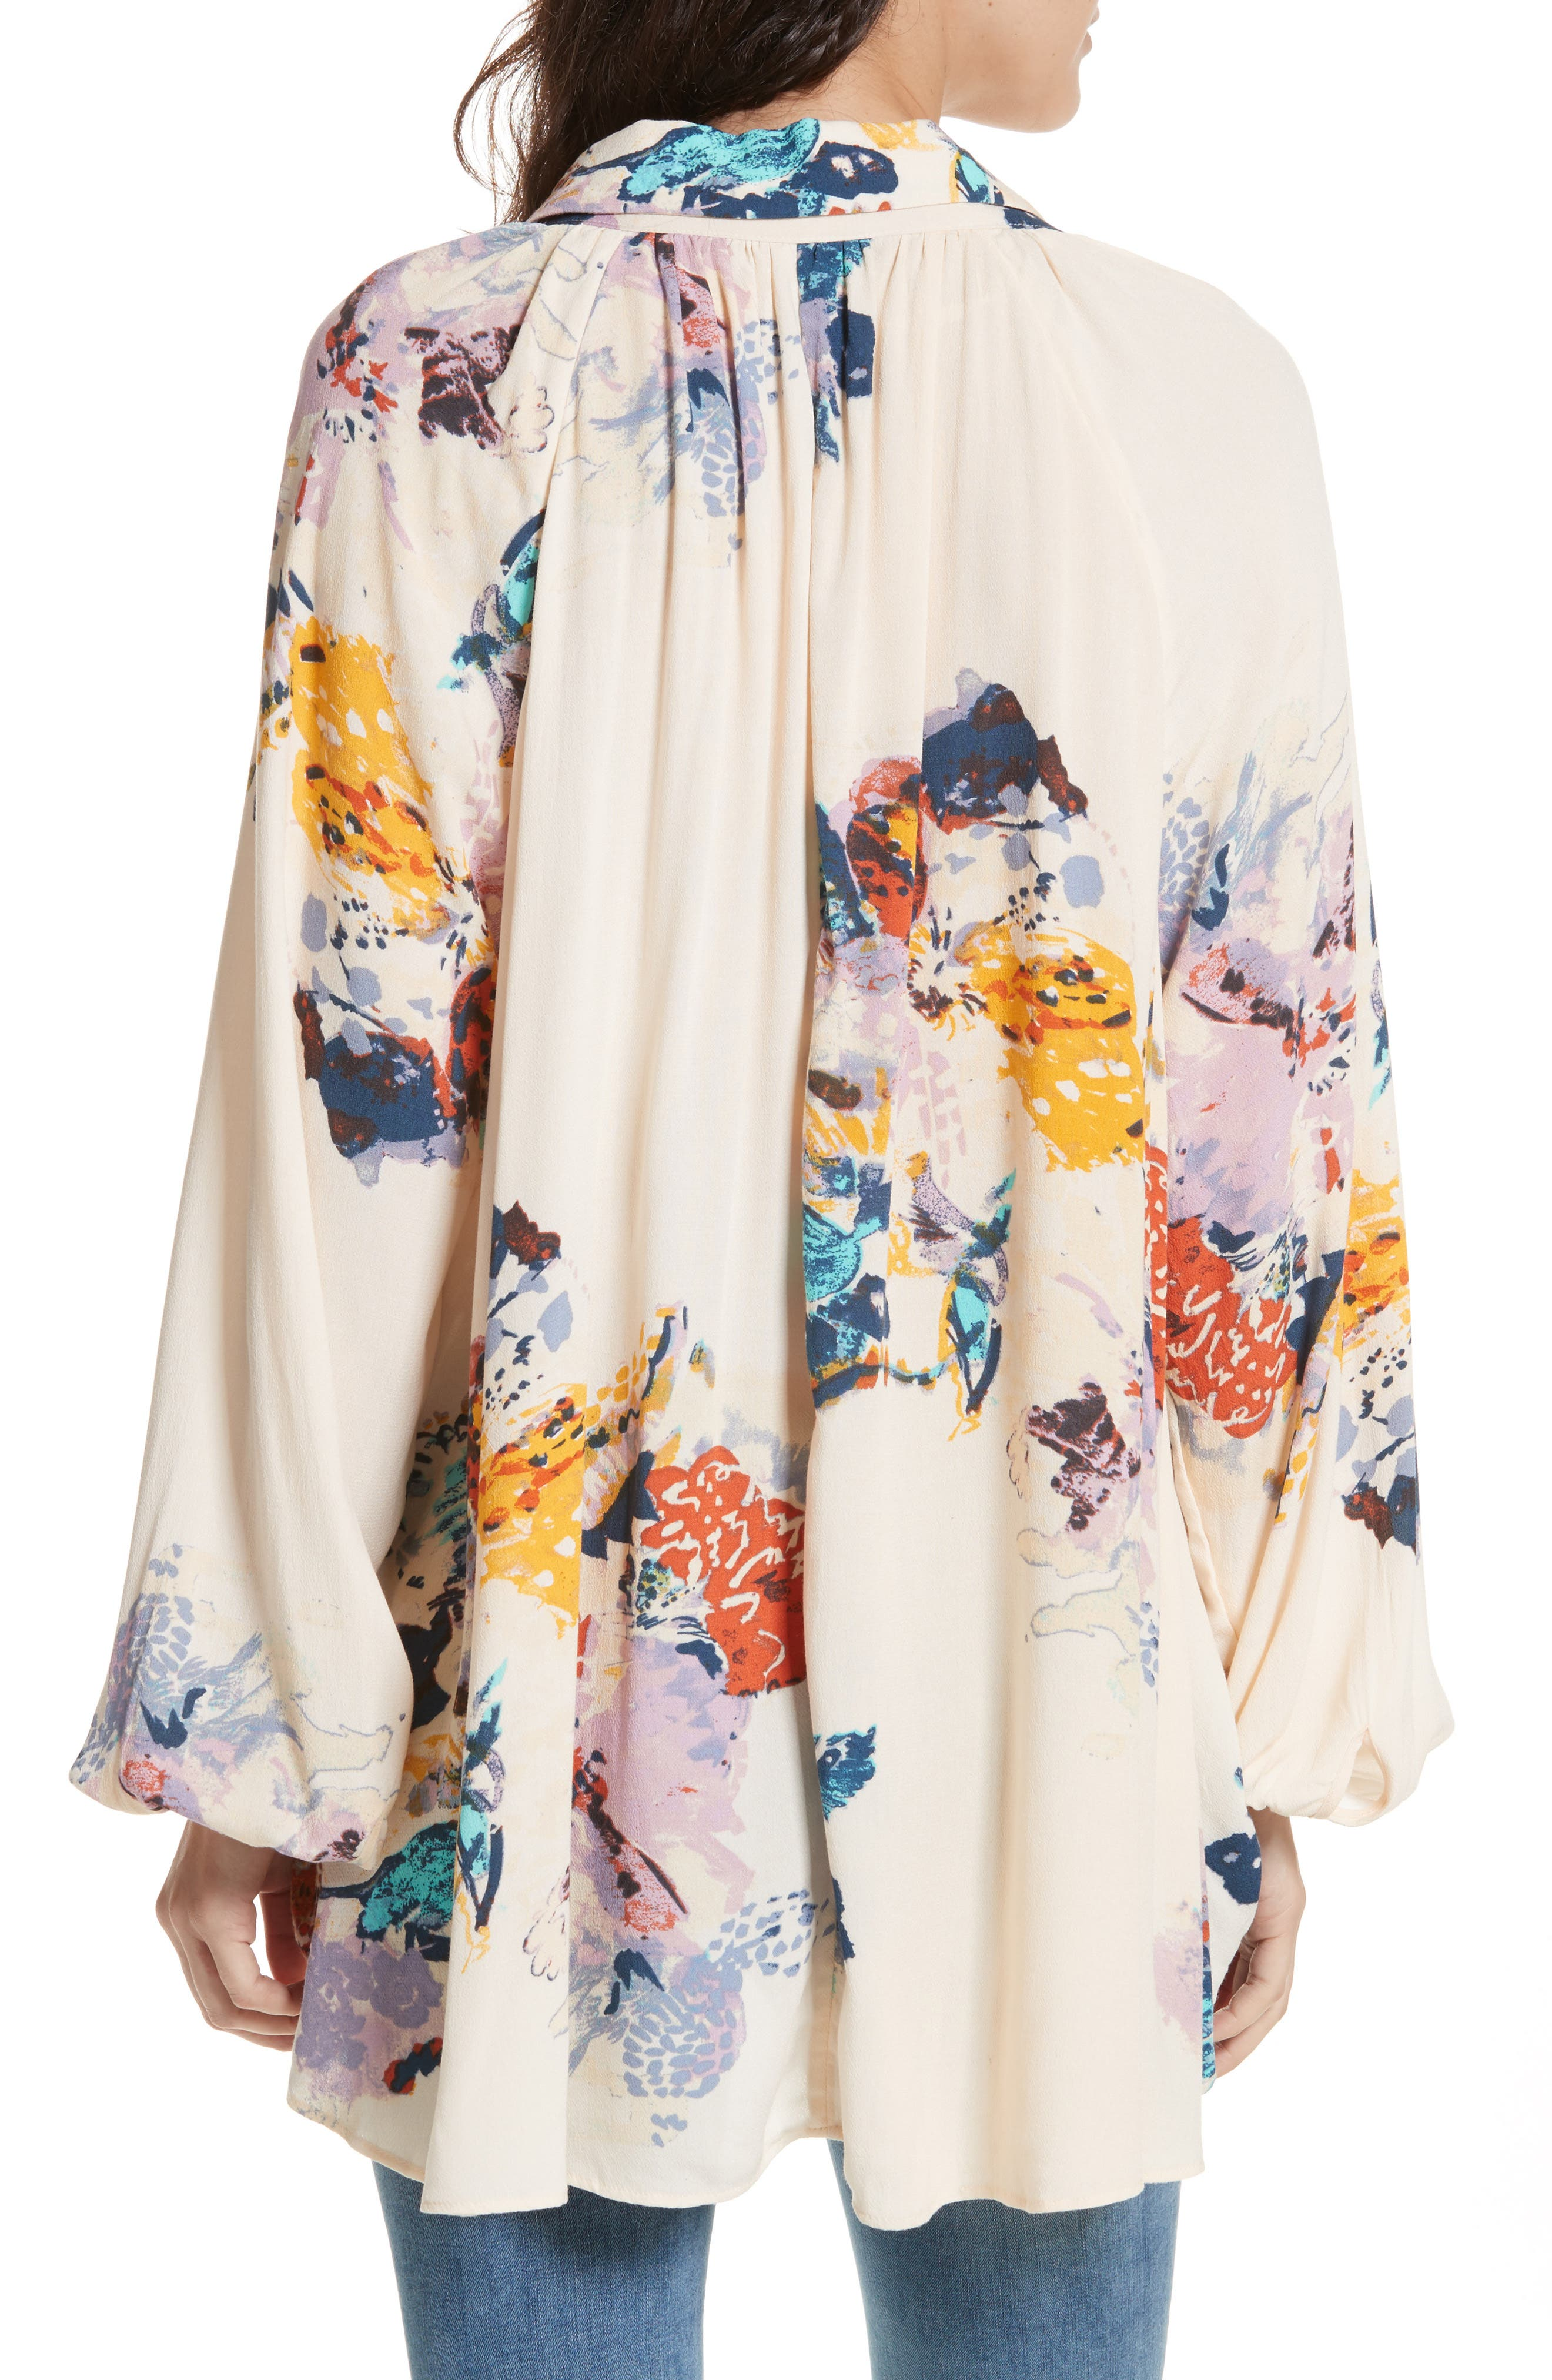 Meadow Lark Blouse,                             Alternate thumbnail 2, color,                             Cream